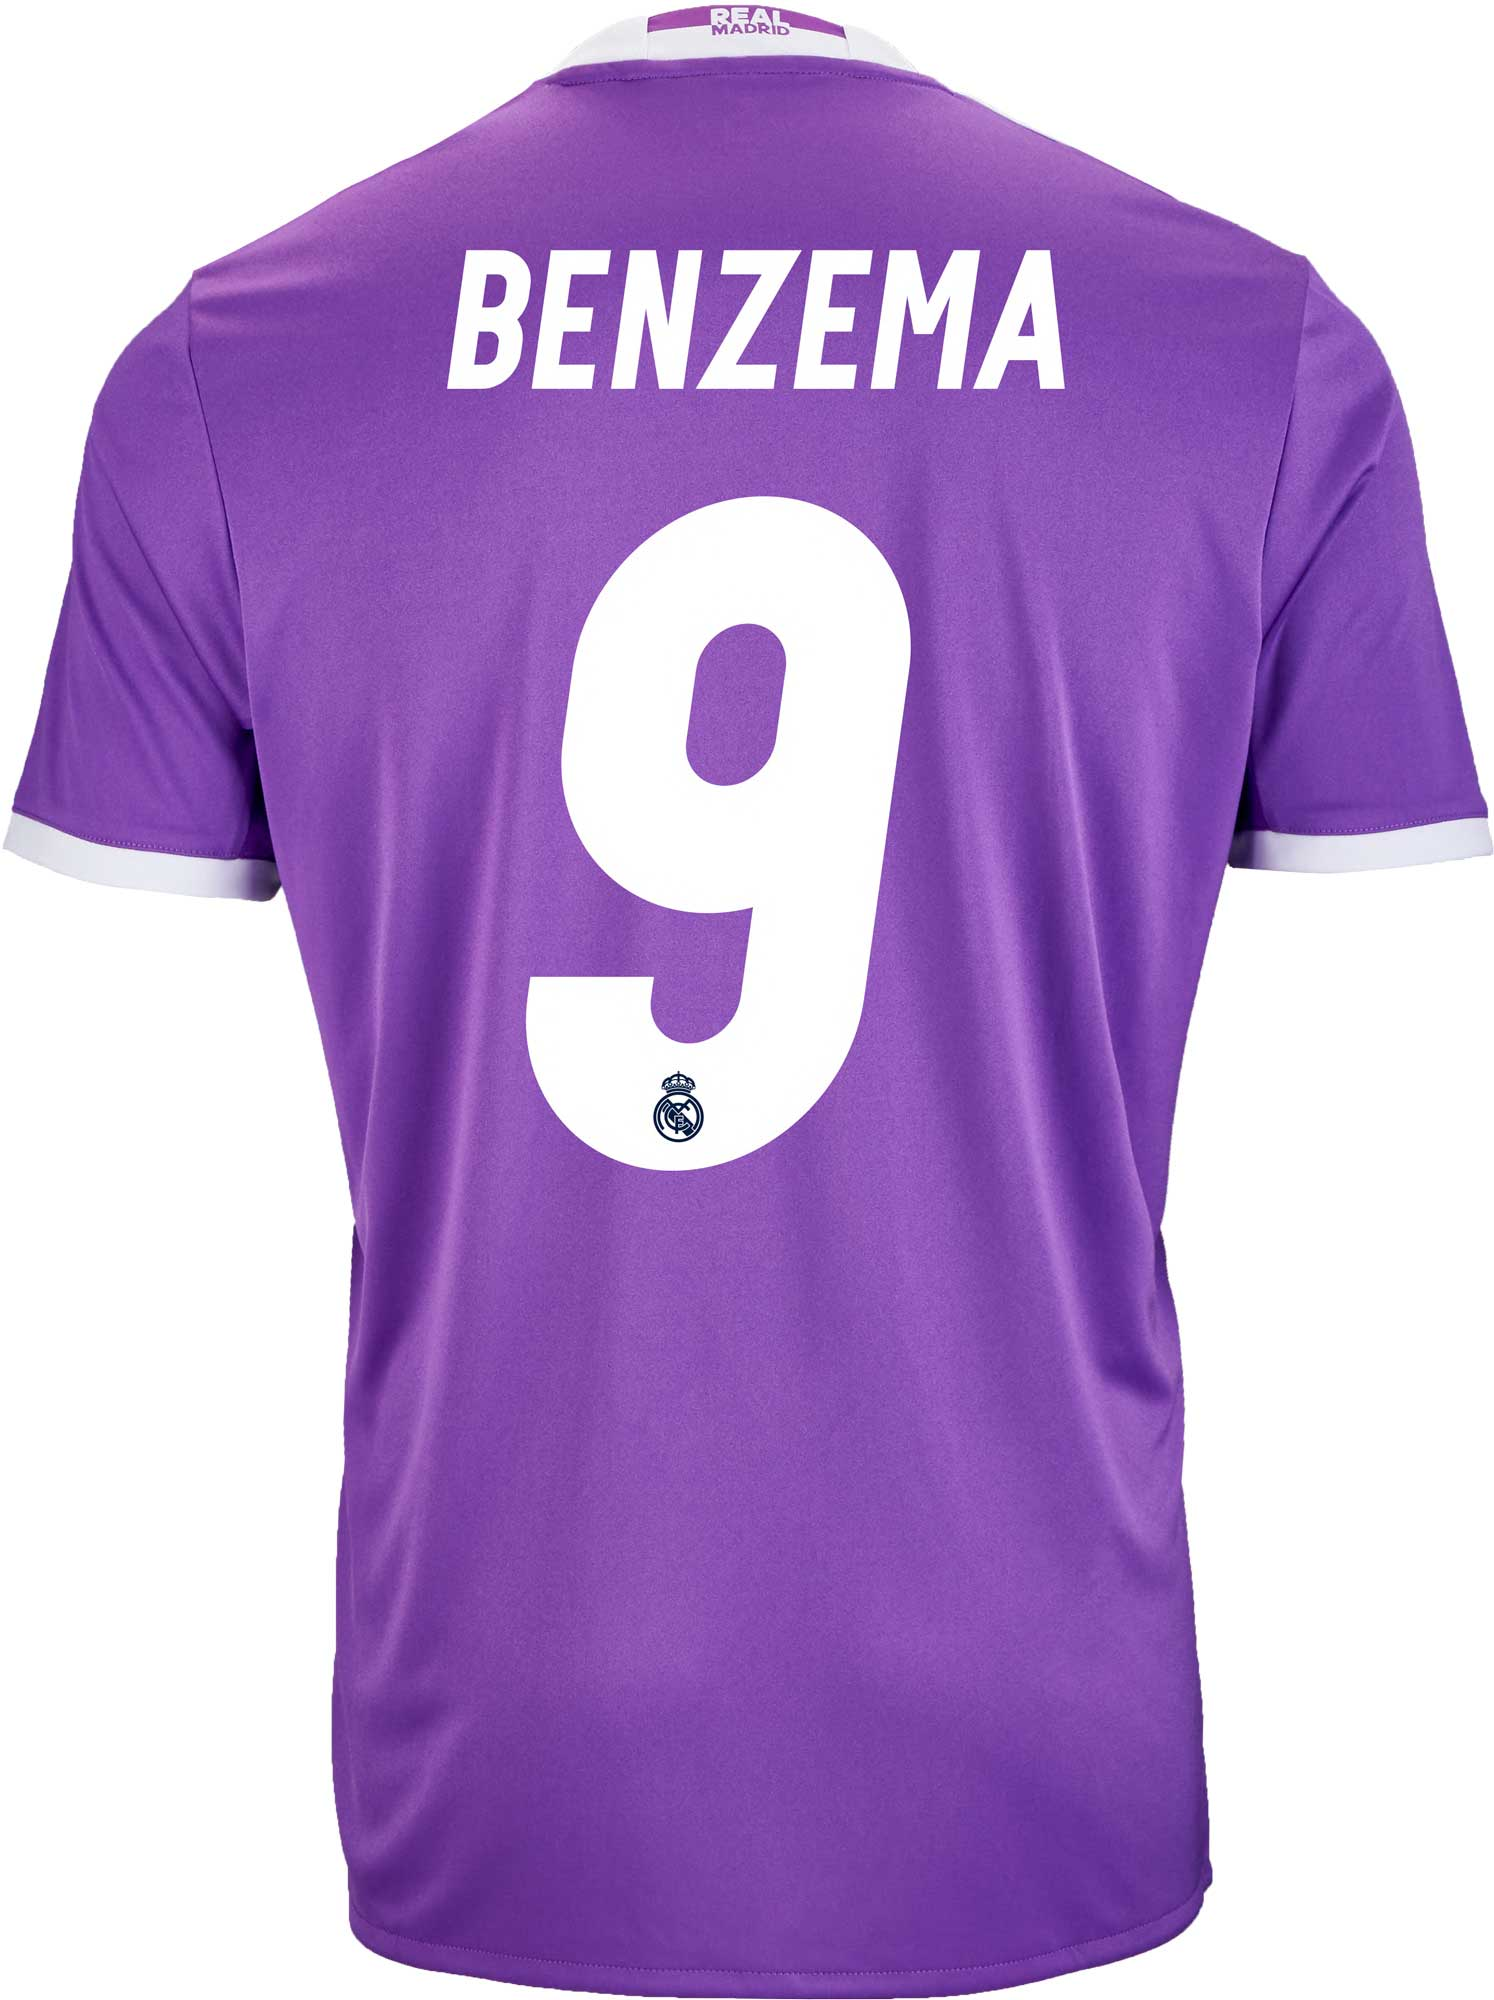 0380d9113 adidas Benzema Real Madrid Jersey - 2016 Real Madrid Jerseys